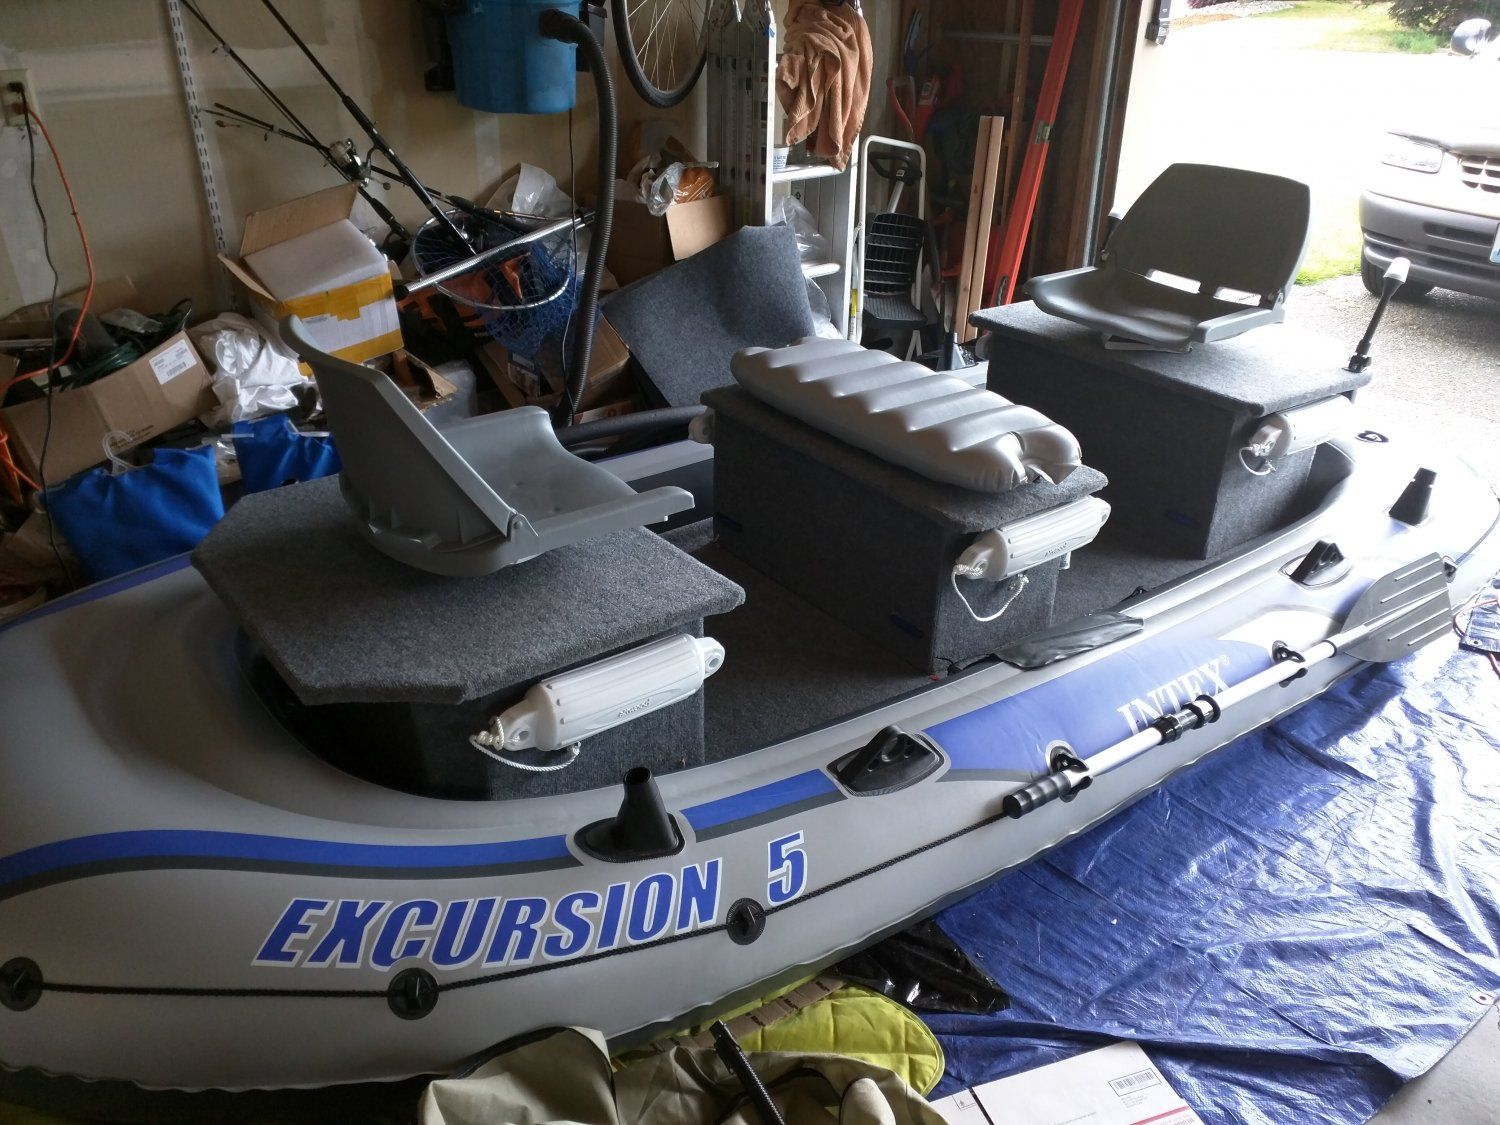 Intex Excursion 5 Inflatable MOD  - Page 4 - The Hull Truth